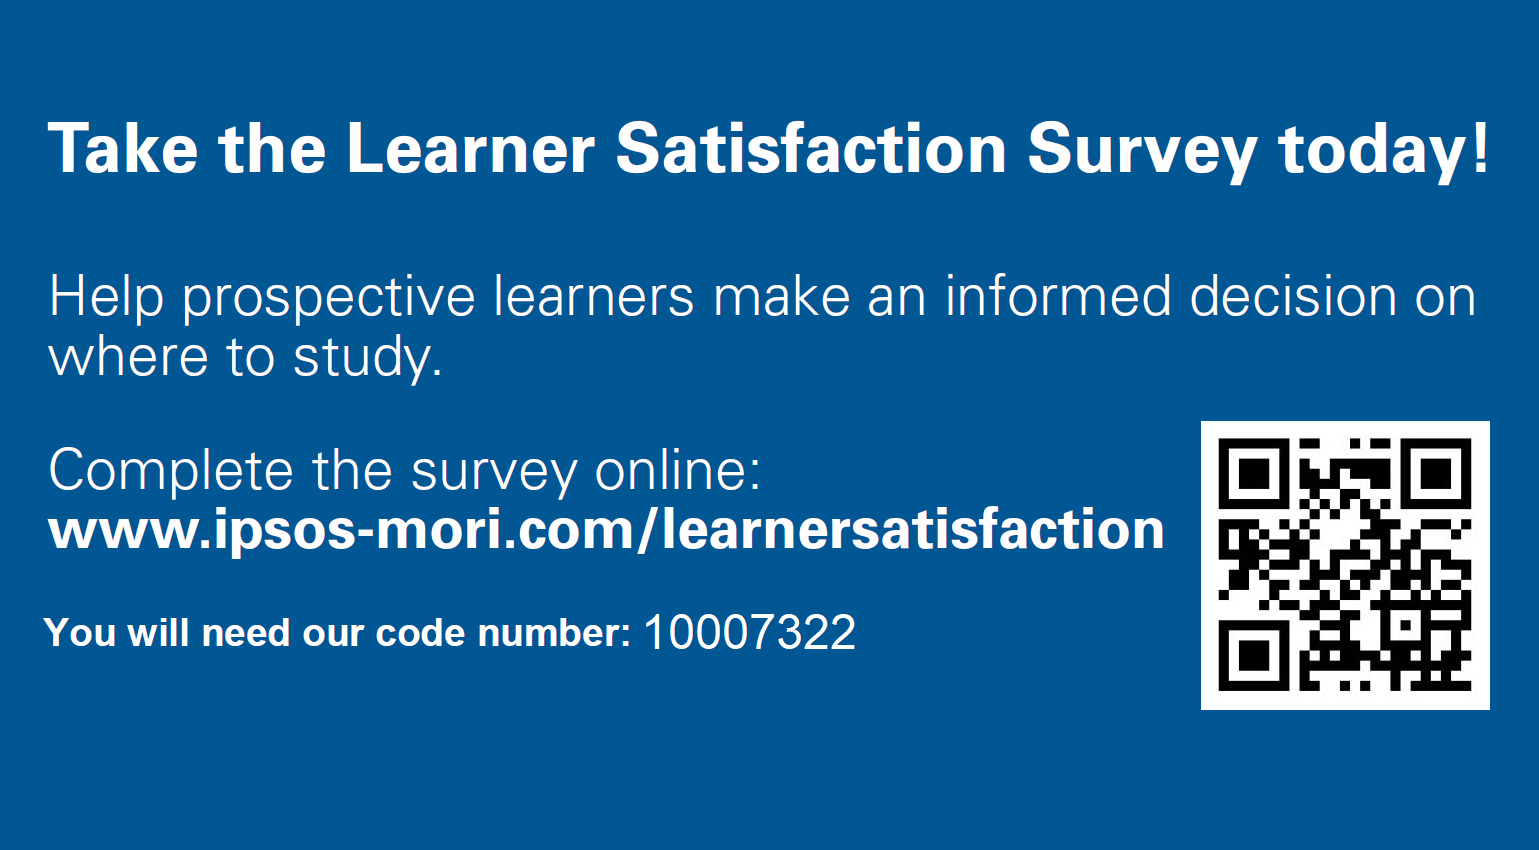 Learner survey 2018 link and graphic